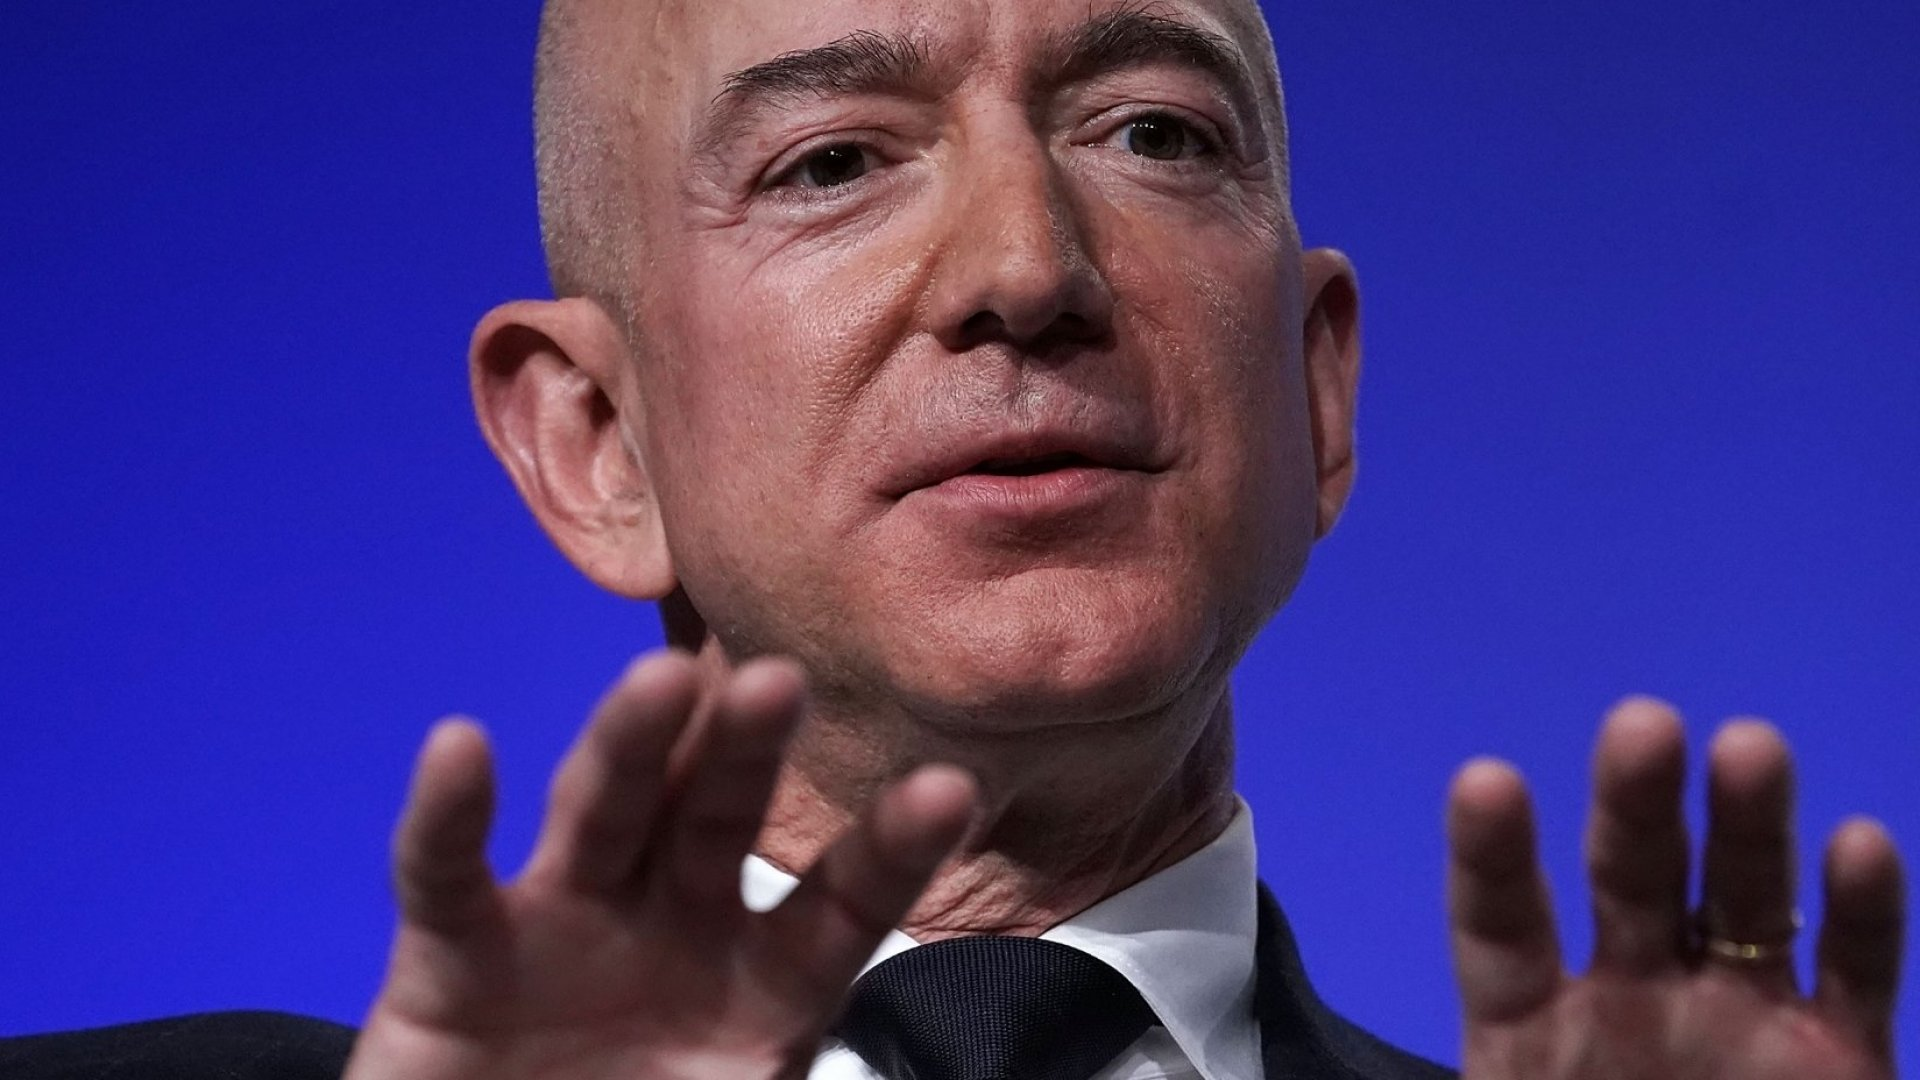 Jeff Bezos Just Revealed How the 'Smartest Guy at Princeton' Radically Changed His Life 34 Years Ago. (He Never Knew Until Now)